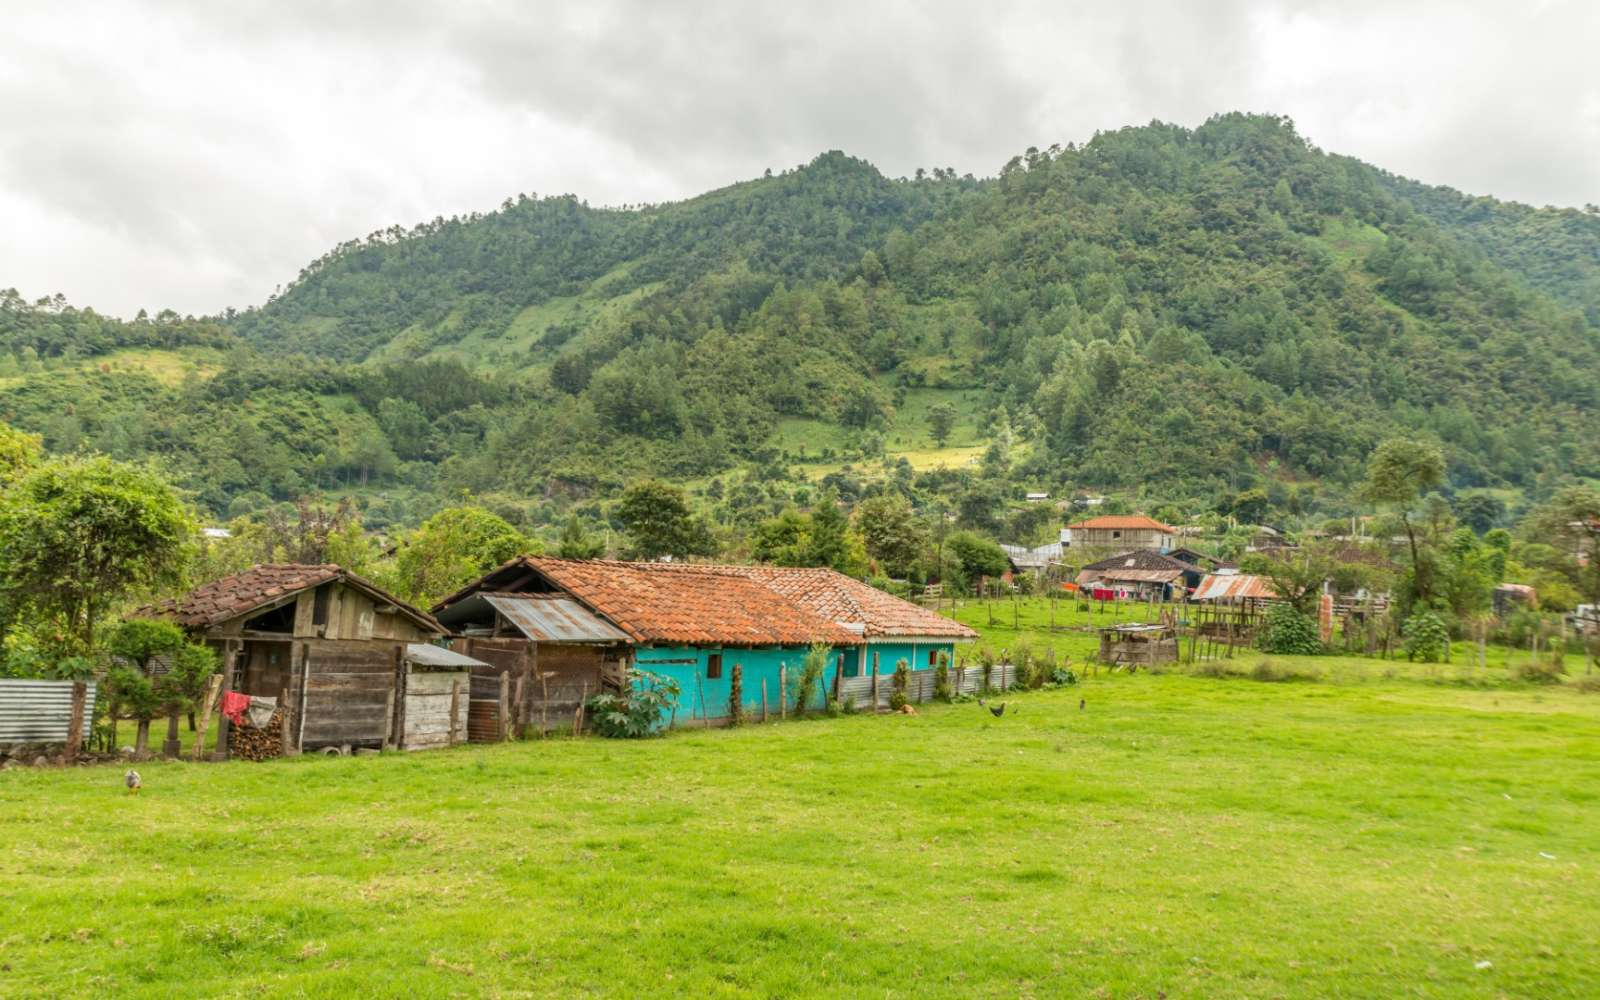 Farm building in Nebaj within the Ixil Triangle of Guatemala